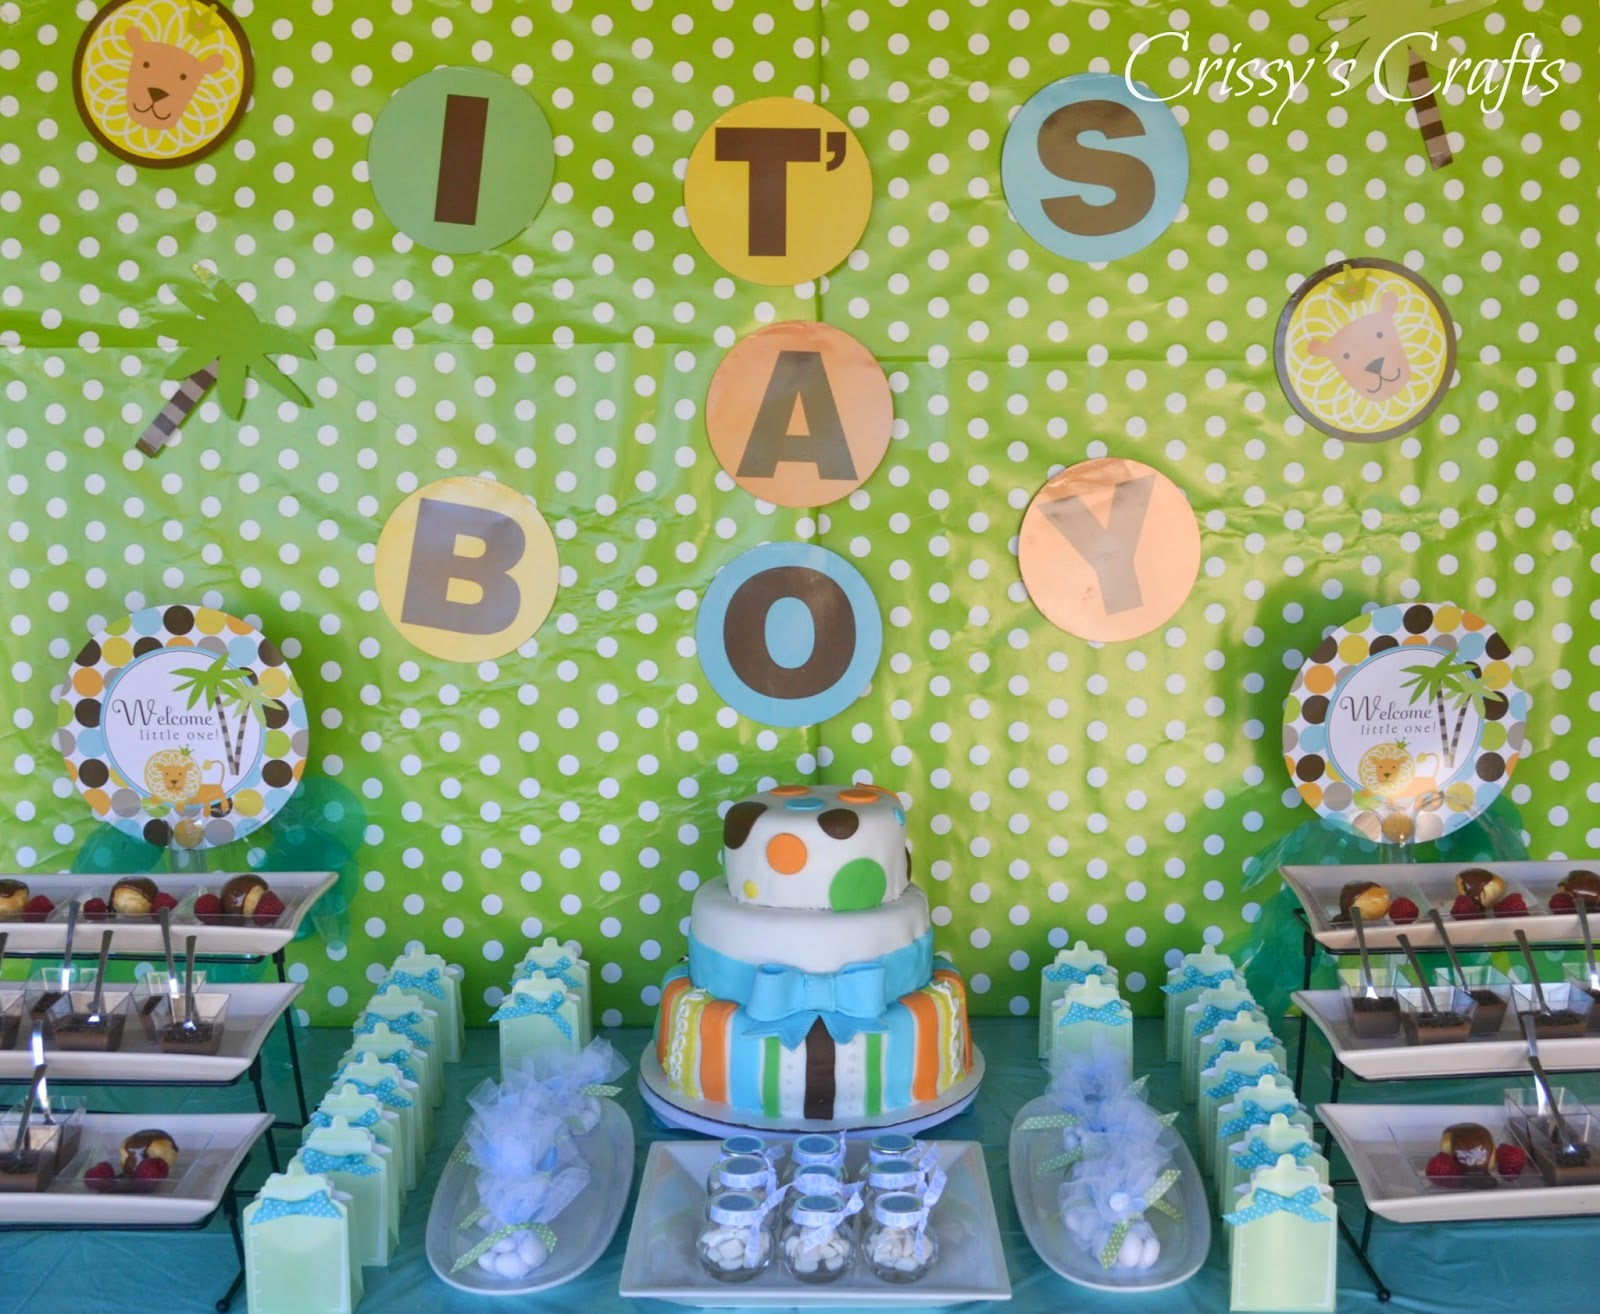 Crissy s Crafts King of The Jungle Baby Shower